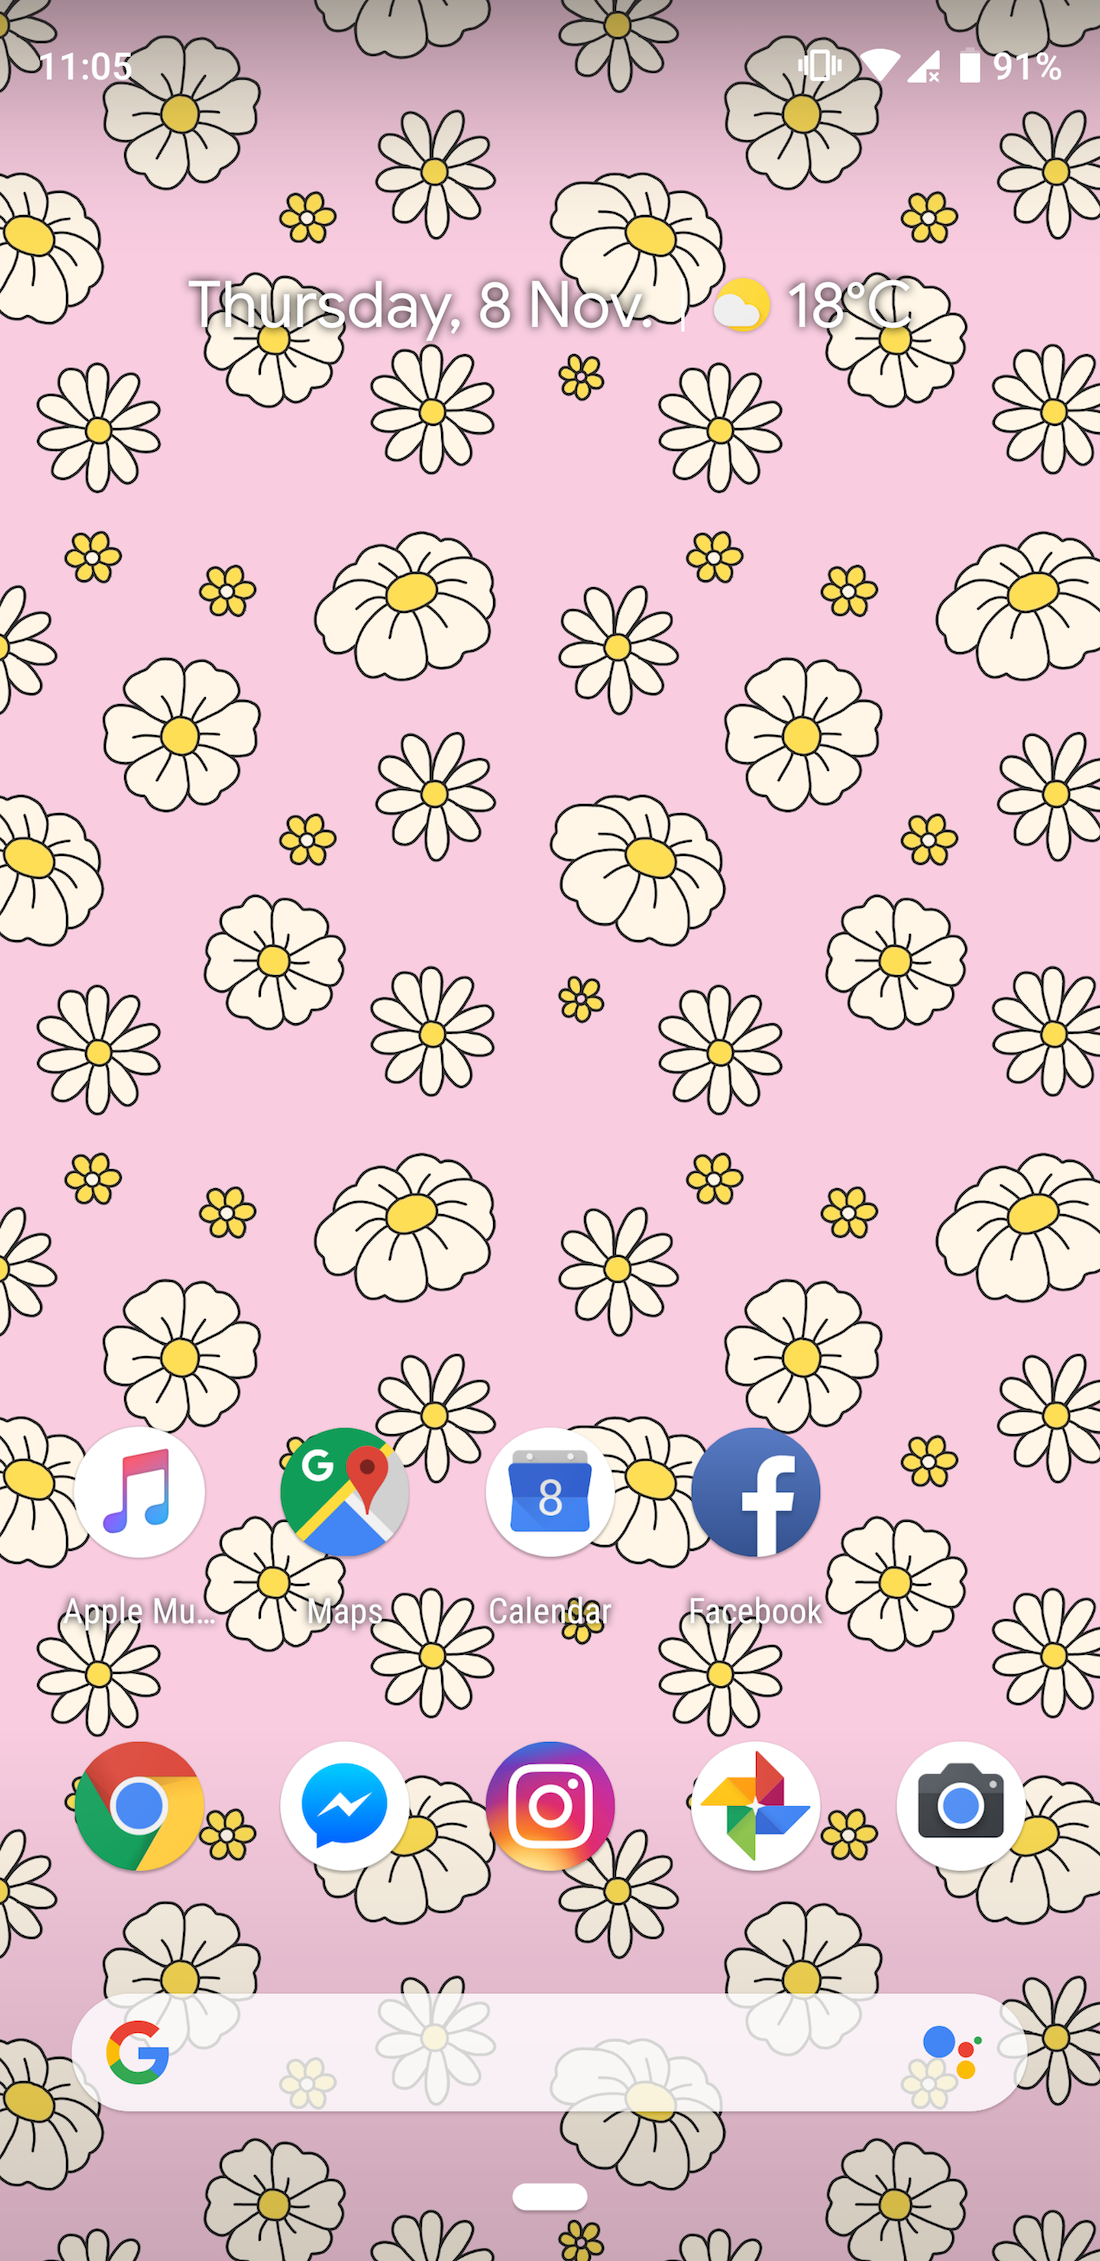 Wallpaper Pattern for Your Phone